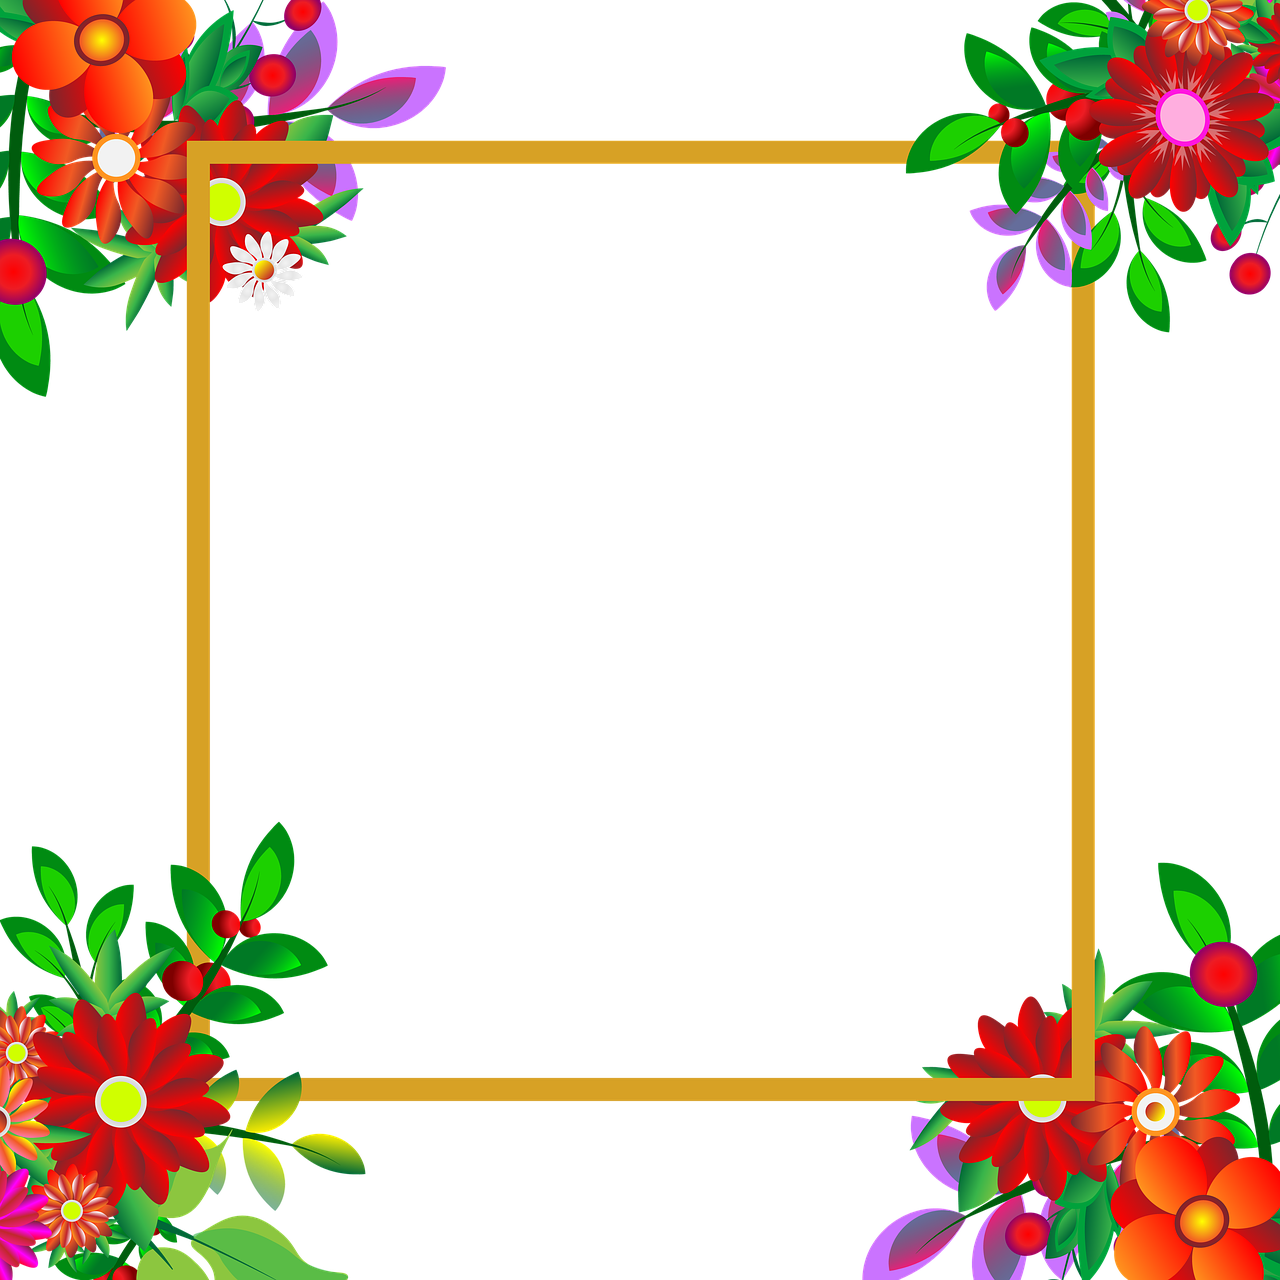 Flowers,photo frame,transparent background,for design,photoshop